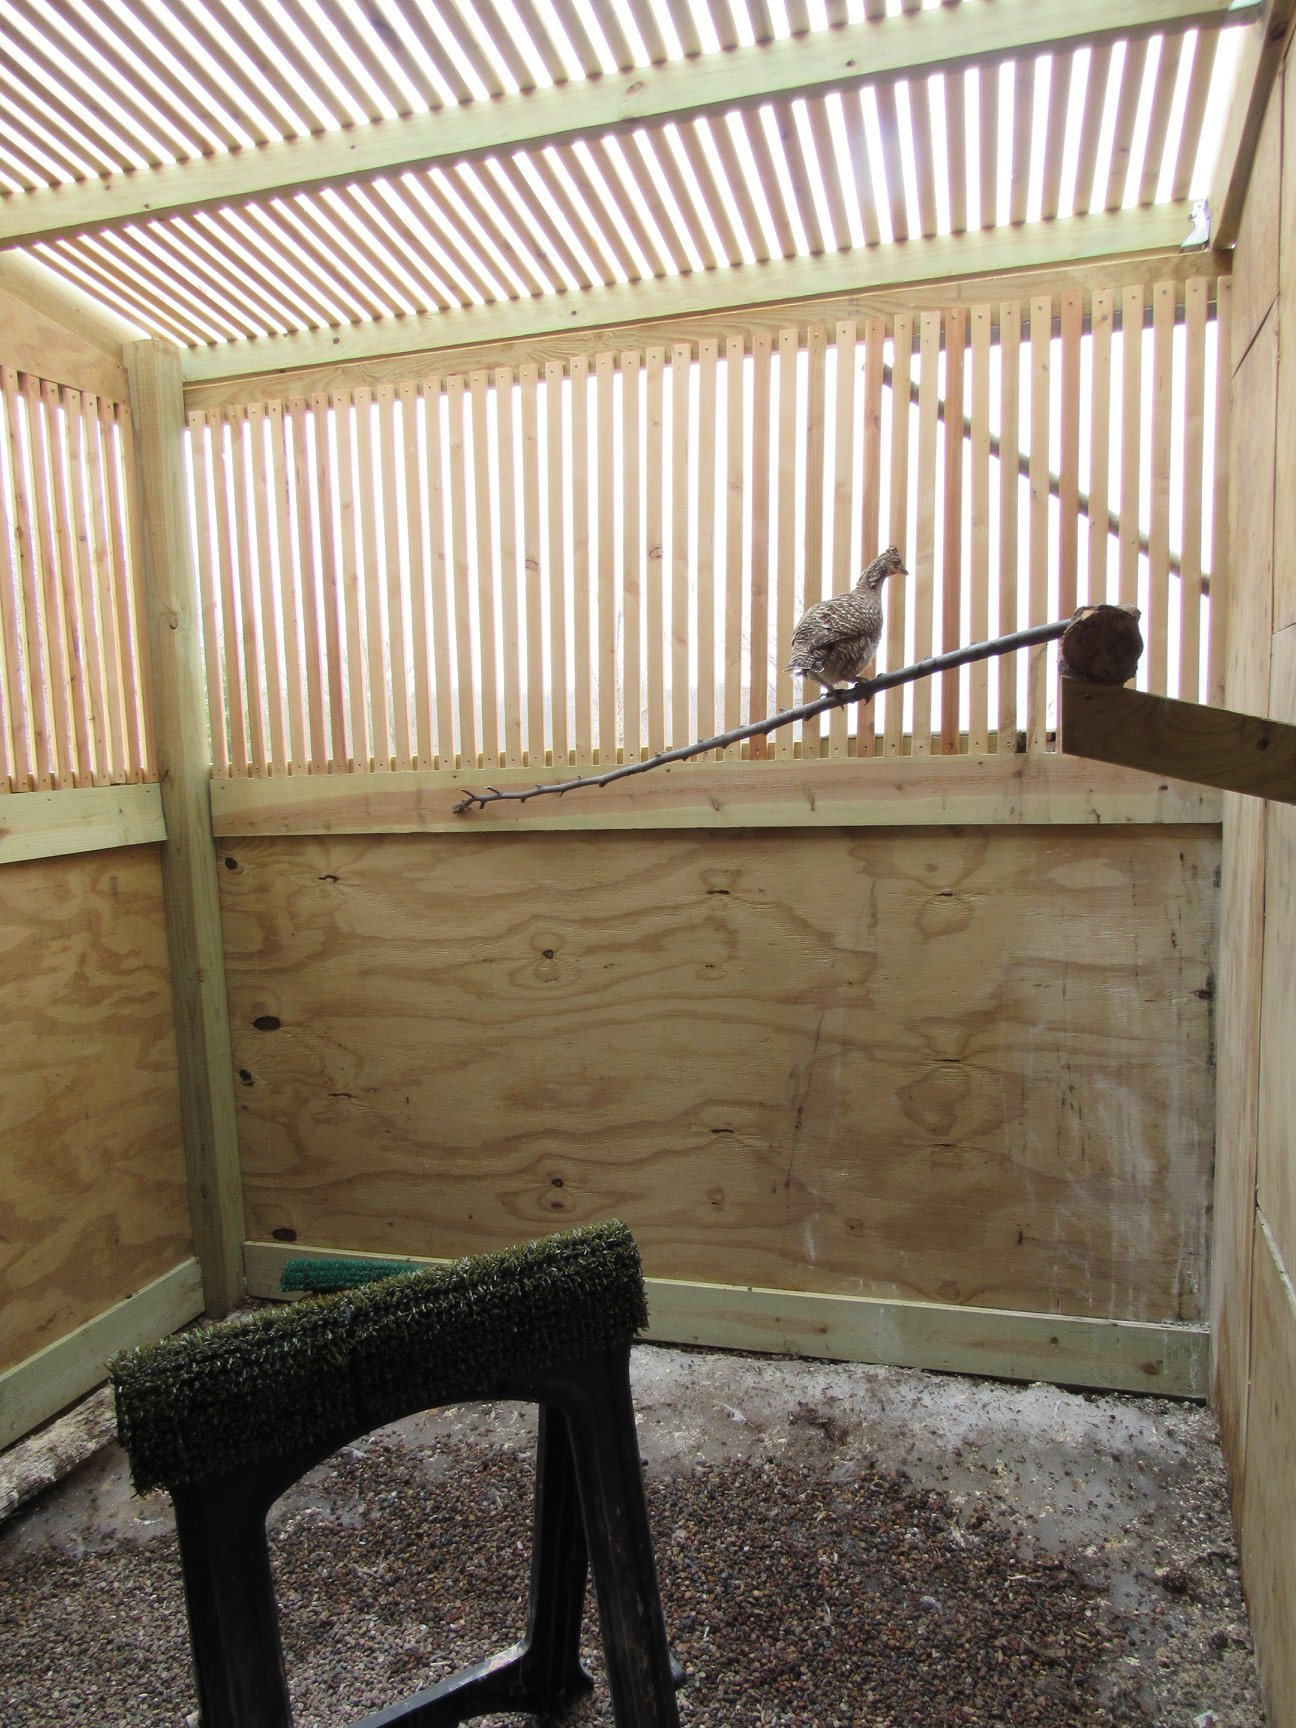 The P.Chicken has been in an outside enclosure to assure she maintained her cold weather insulation and water proofed feathers.